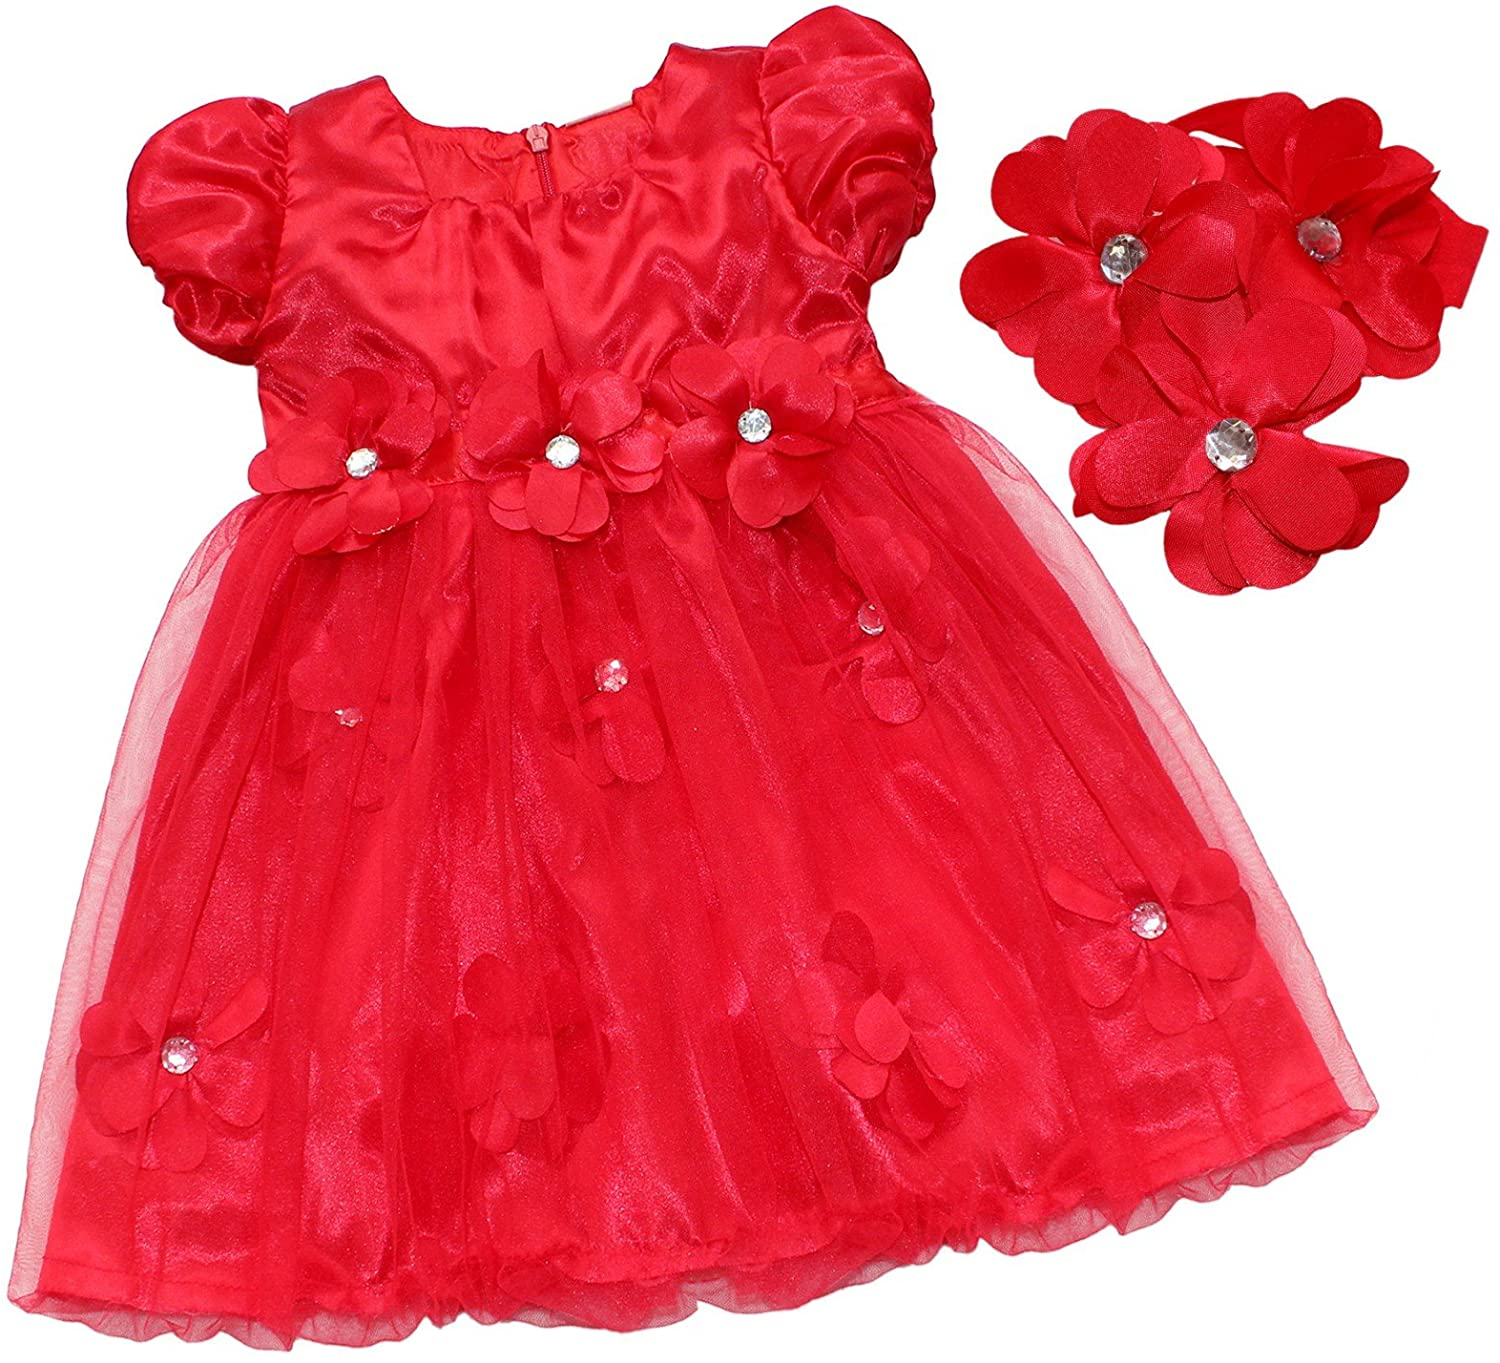 YiZYiF Infant Baby Girls Christmas Vintage Lace Bow Short Puff Sleeves Holiday Party Princess Dress